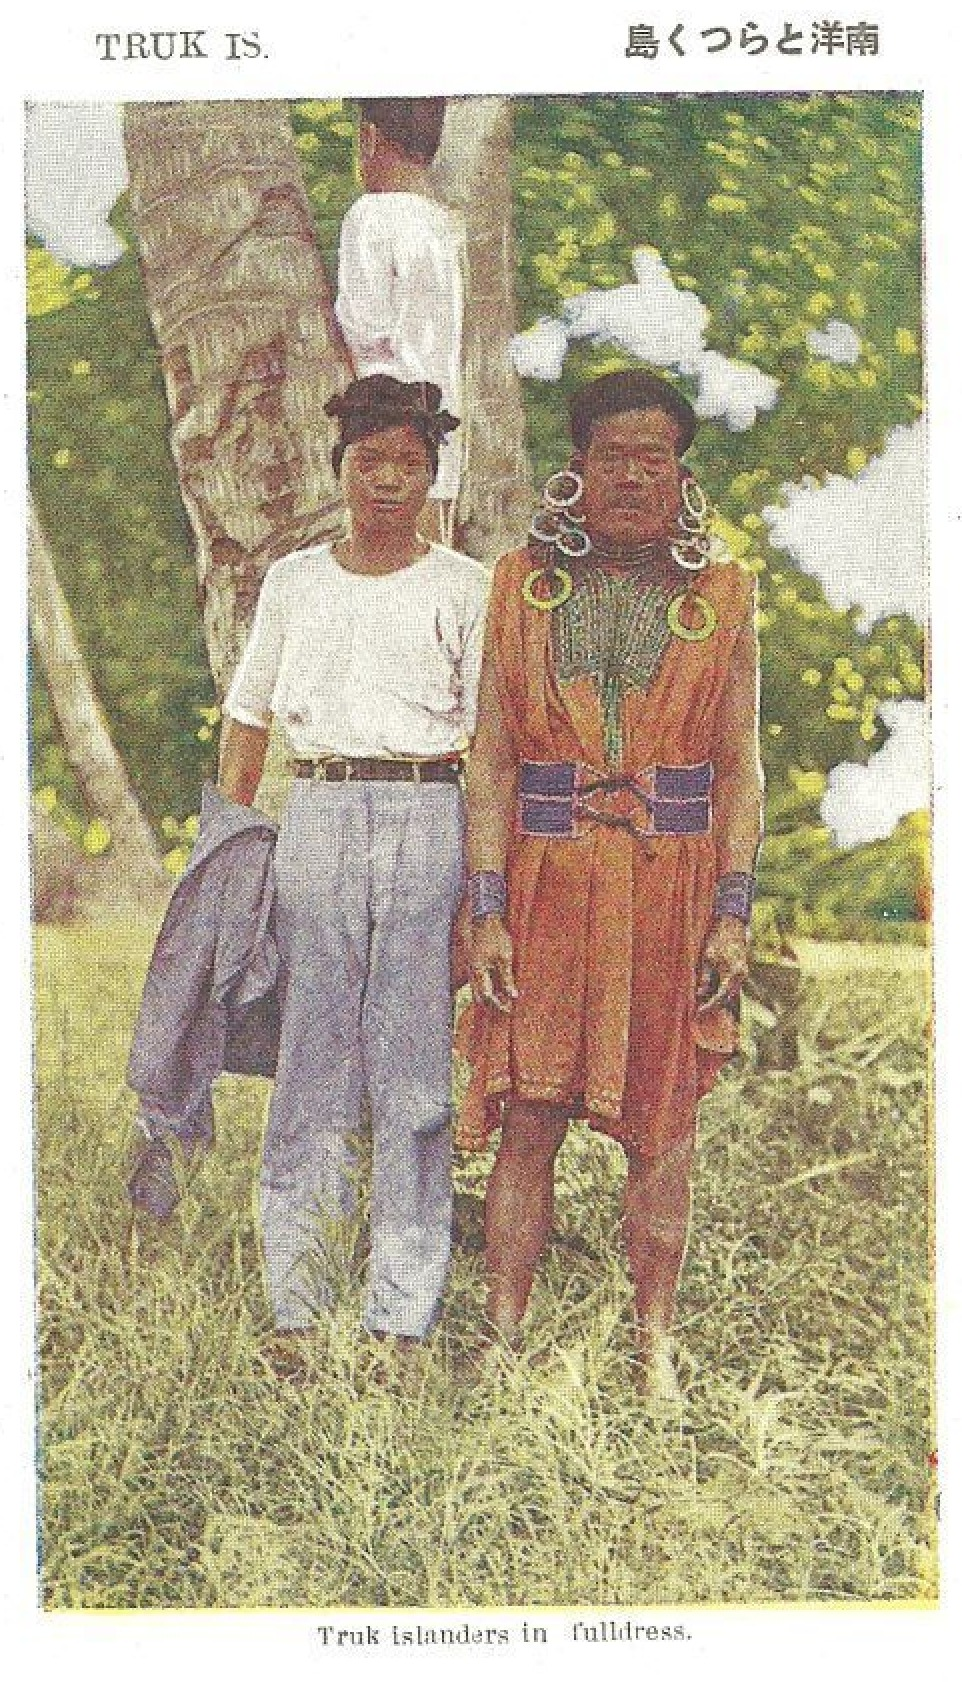 At right, a traditionally dressed older Truk man. Dress includes earrings, belt, sleeveless textile pullover, bracelets. Circa 1930s.